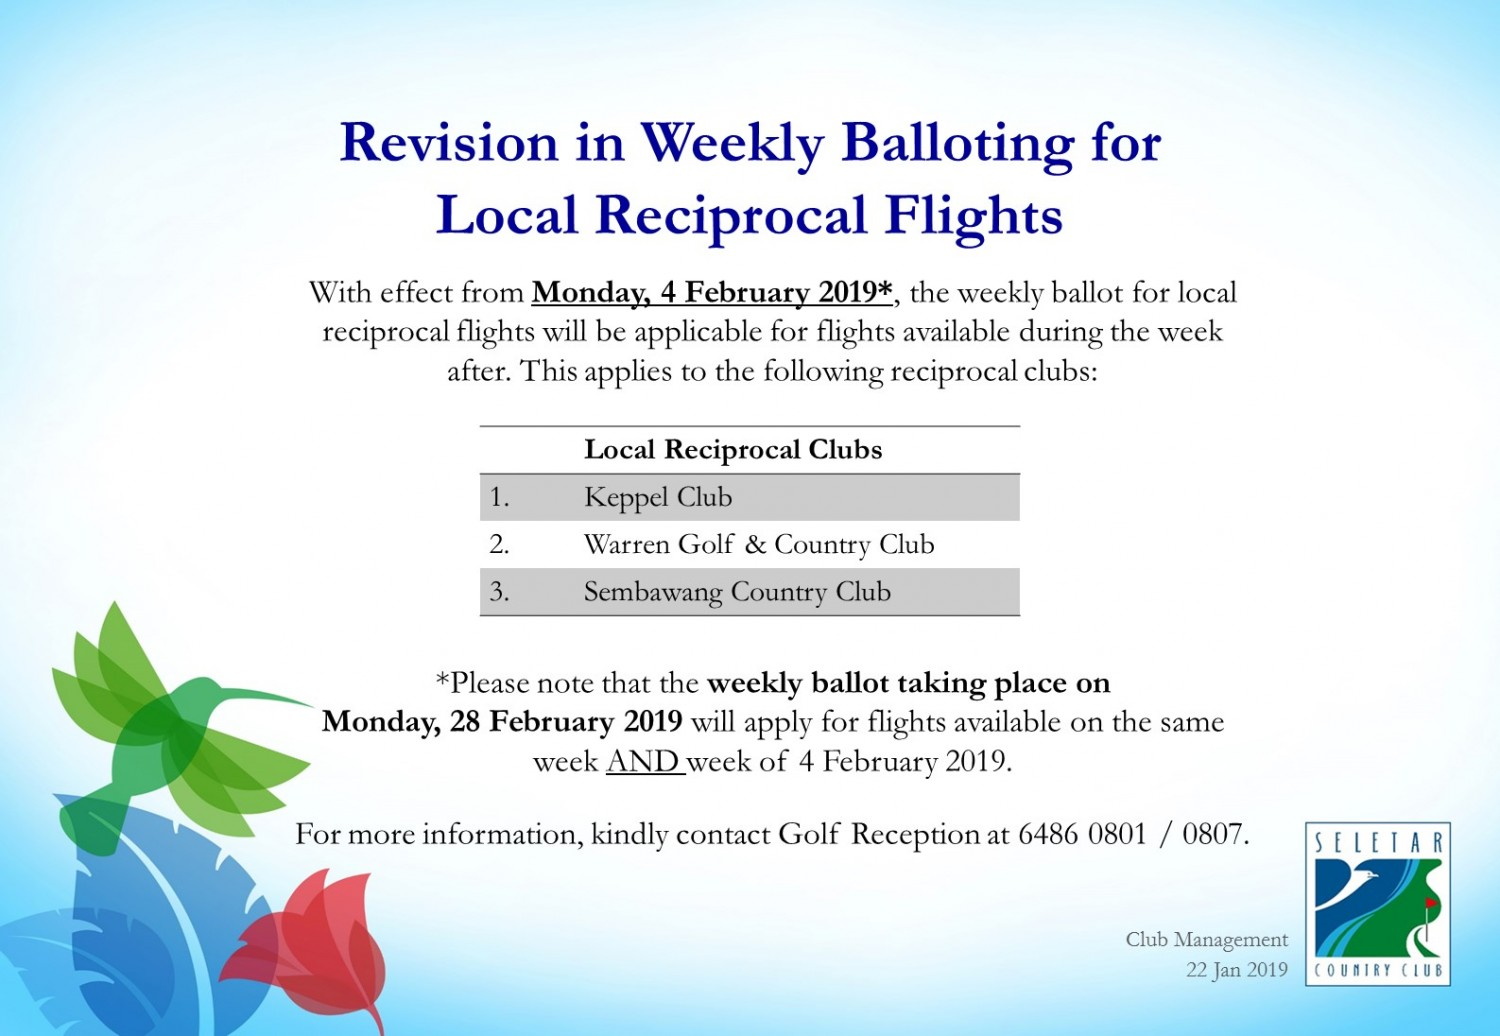 Revision in Weekly Balloting for Local Reciprocal Flights